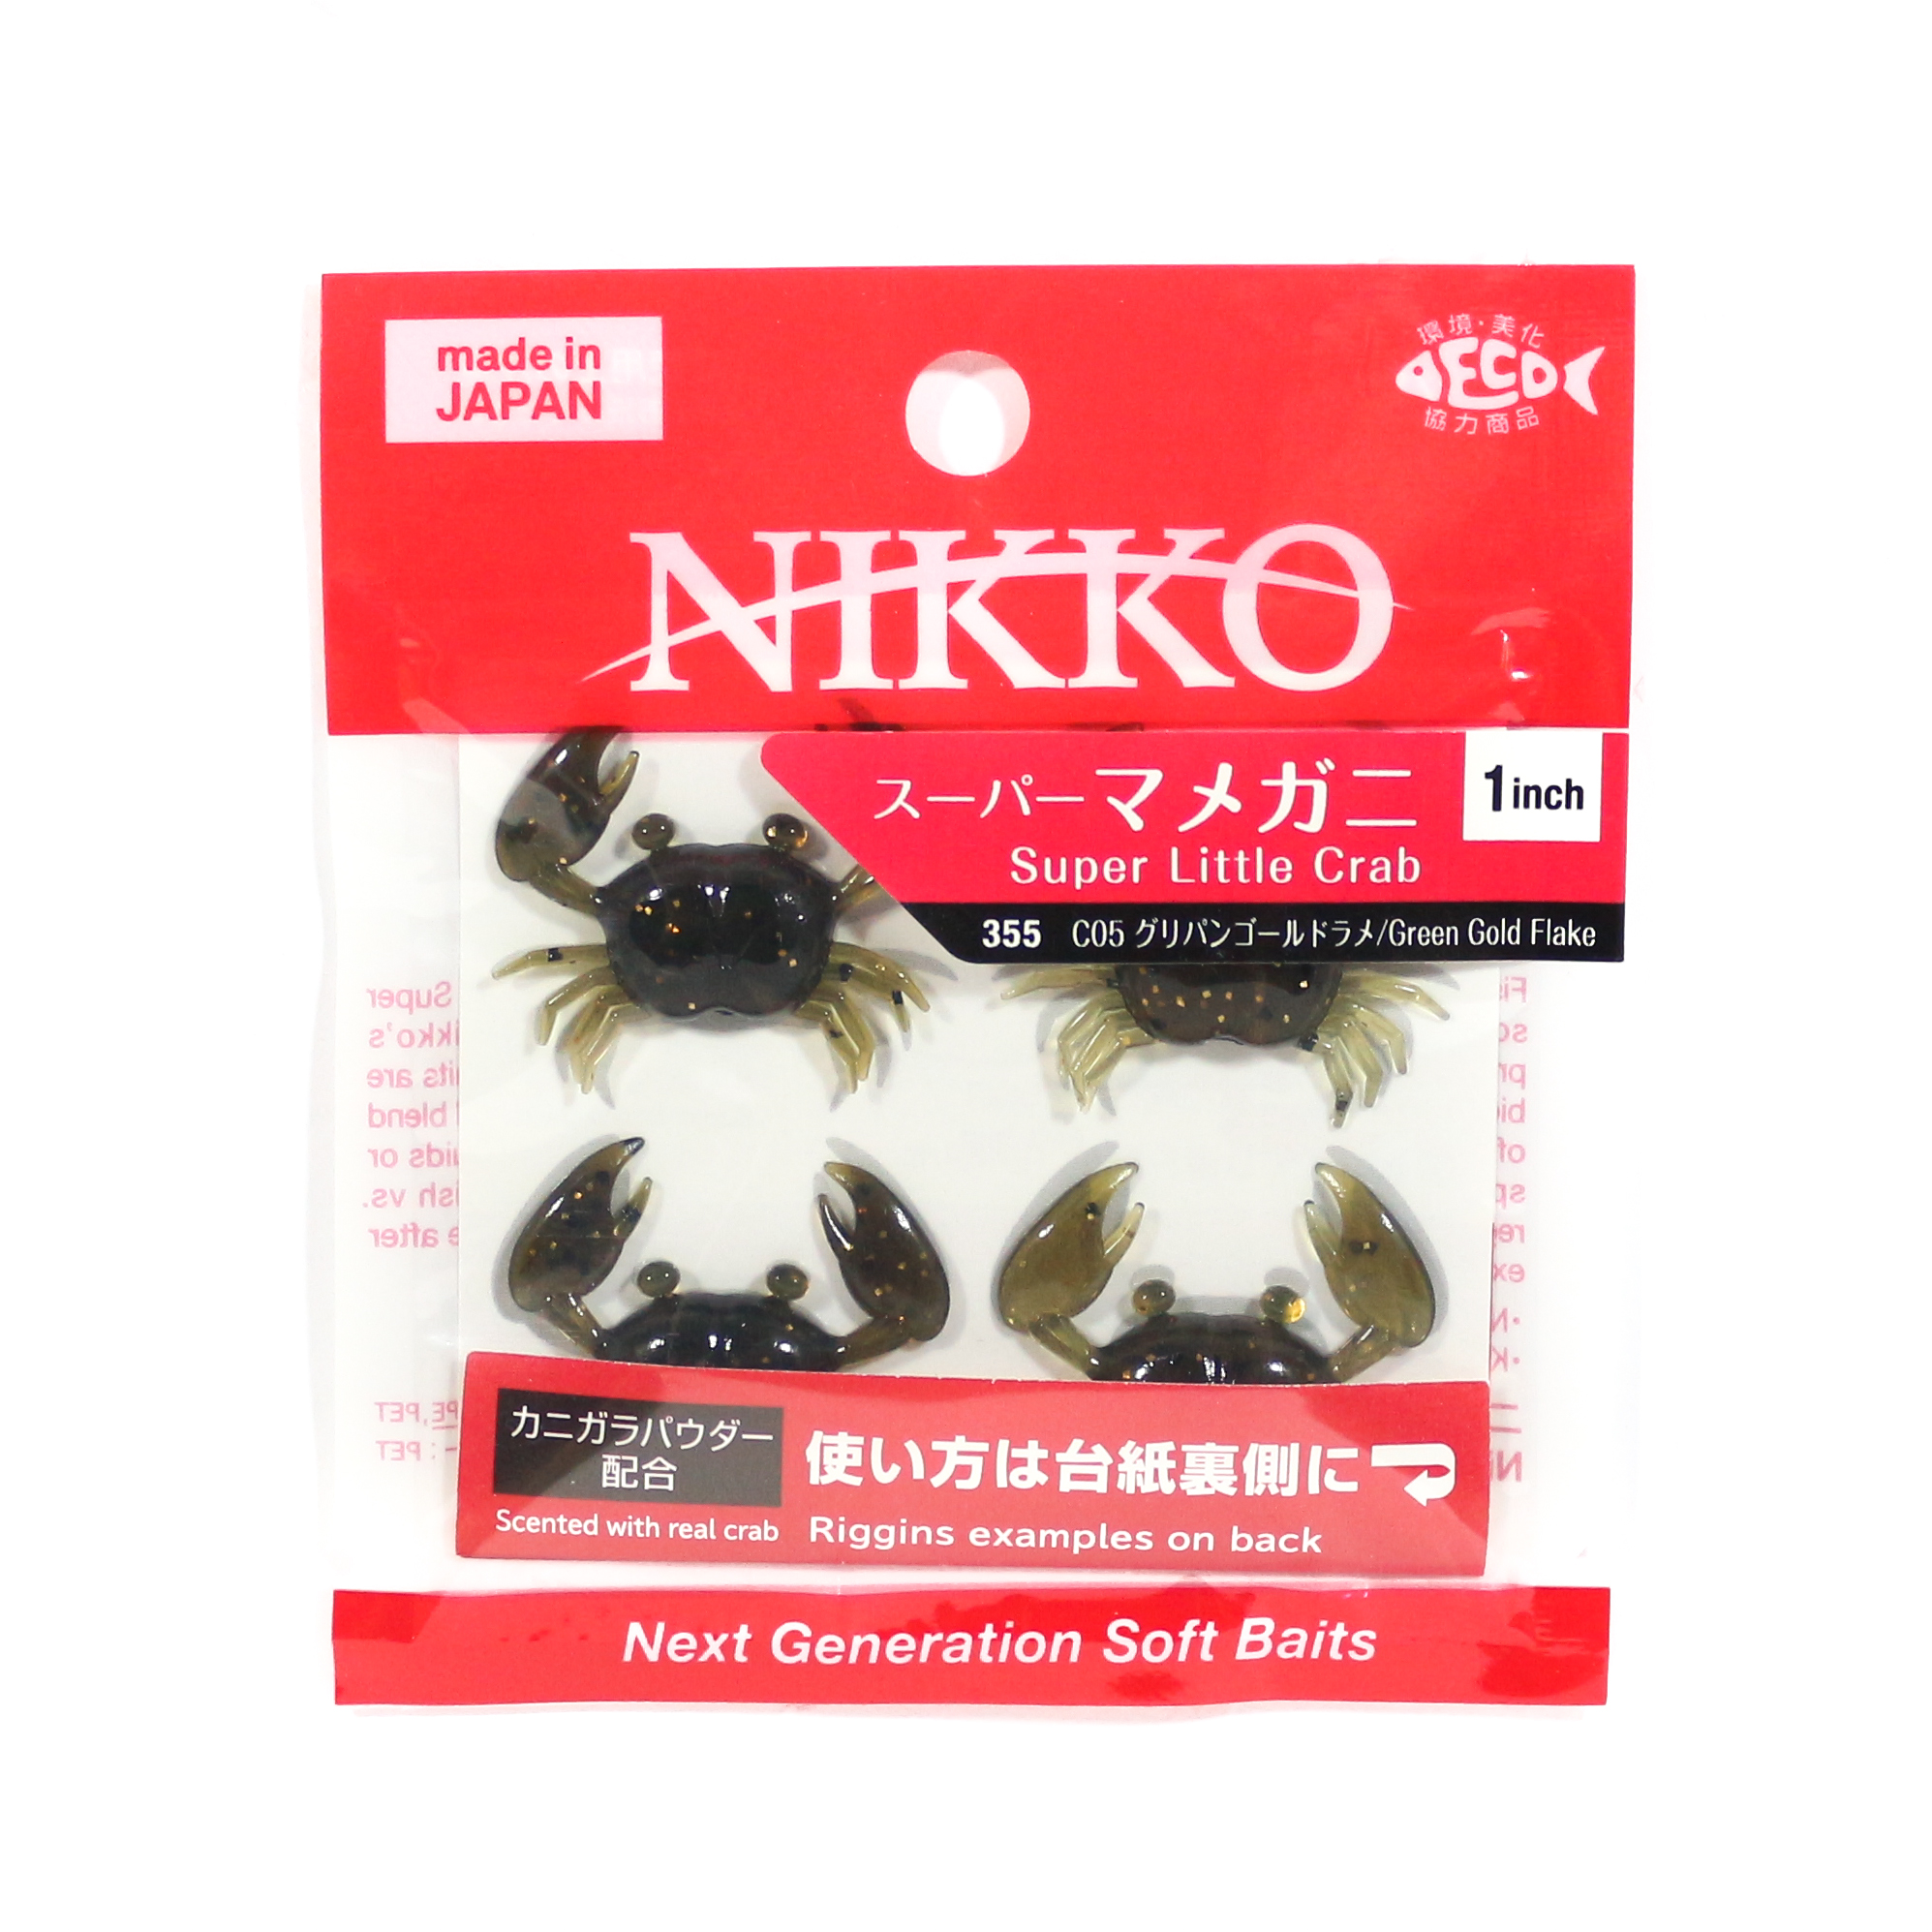 Nikko Soft Lure Super Little Crab Scented 1 Inch 4/Pack 355 (3559)